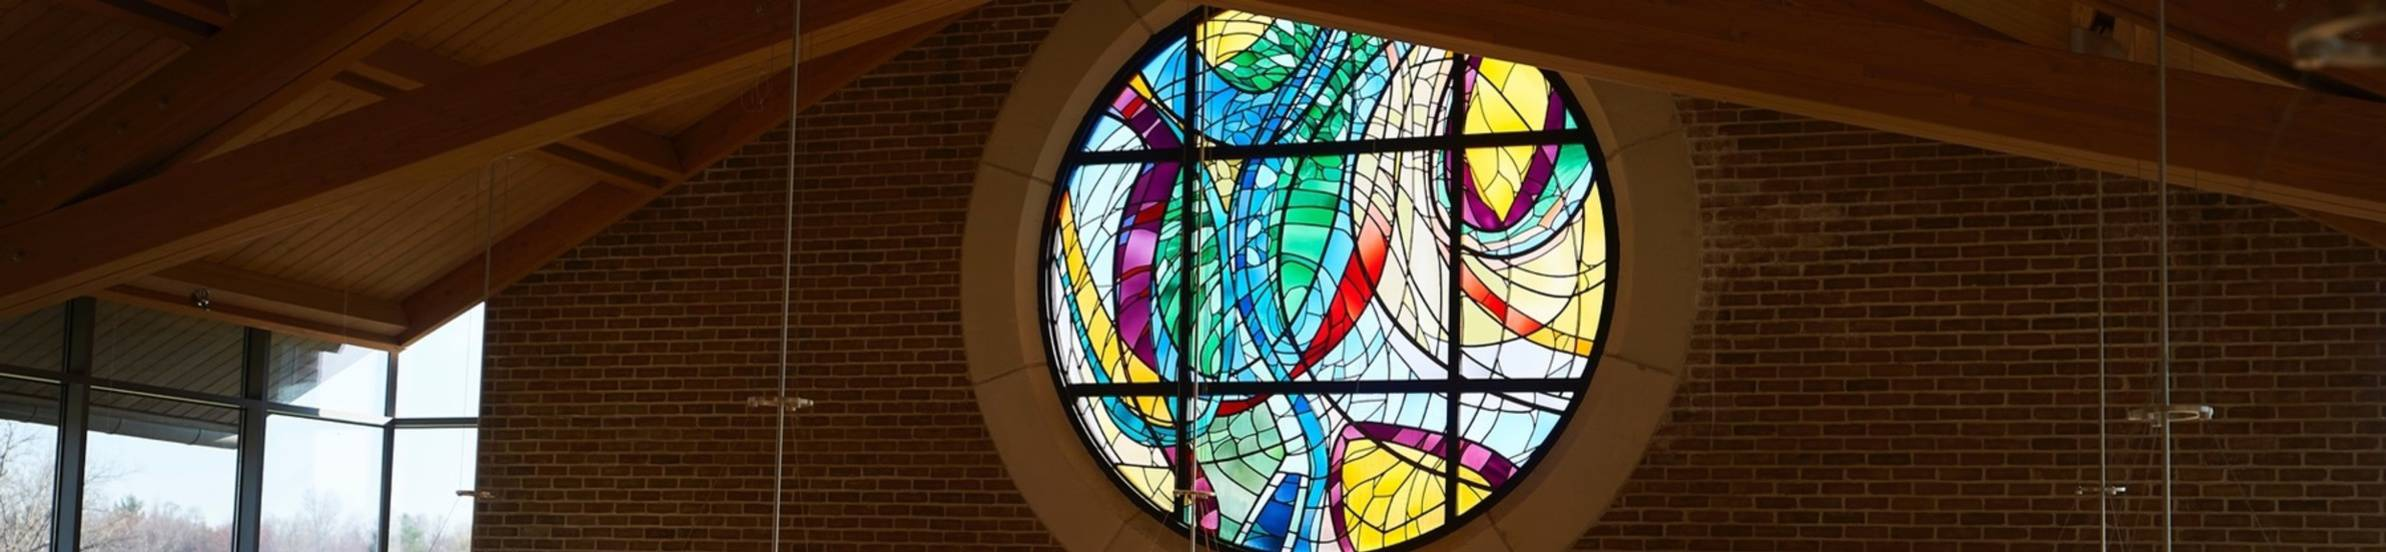 Ursuline college stained glass window4